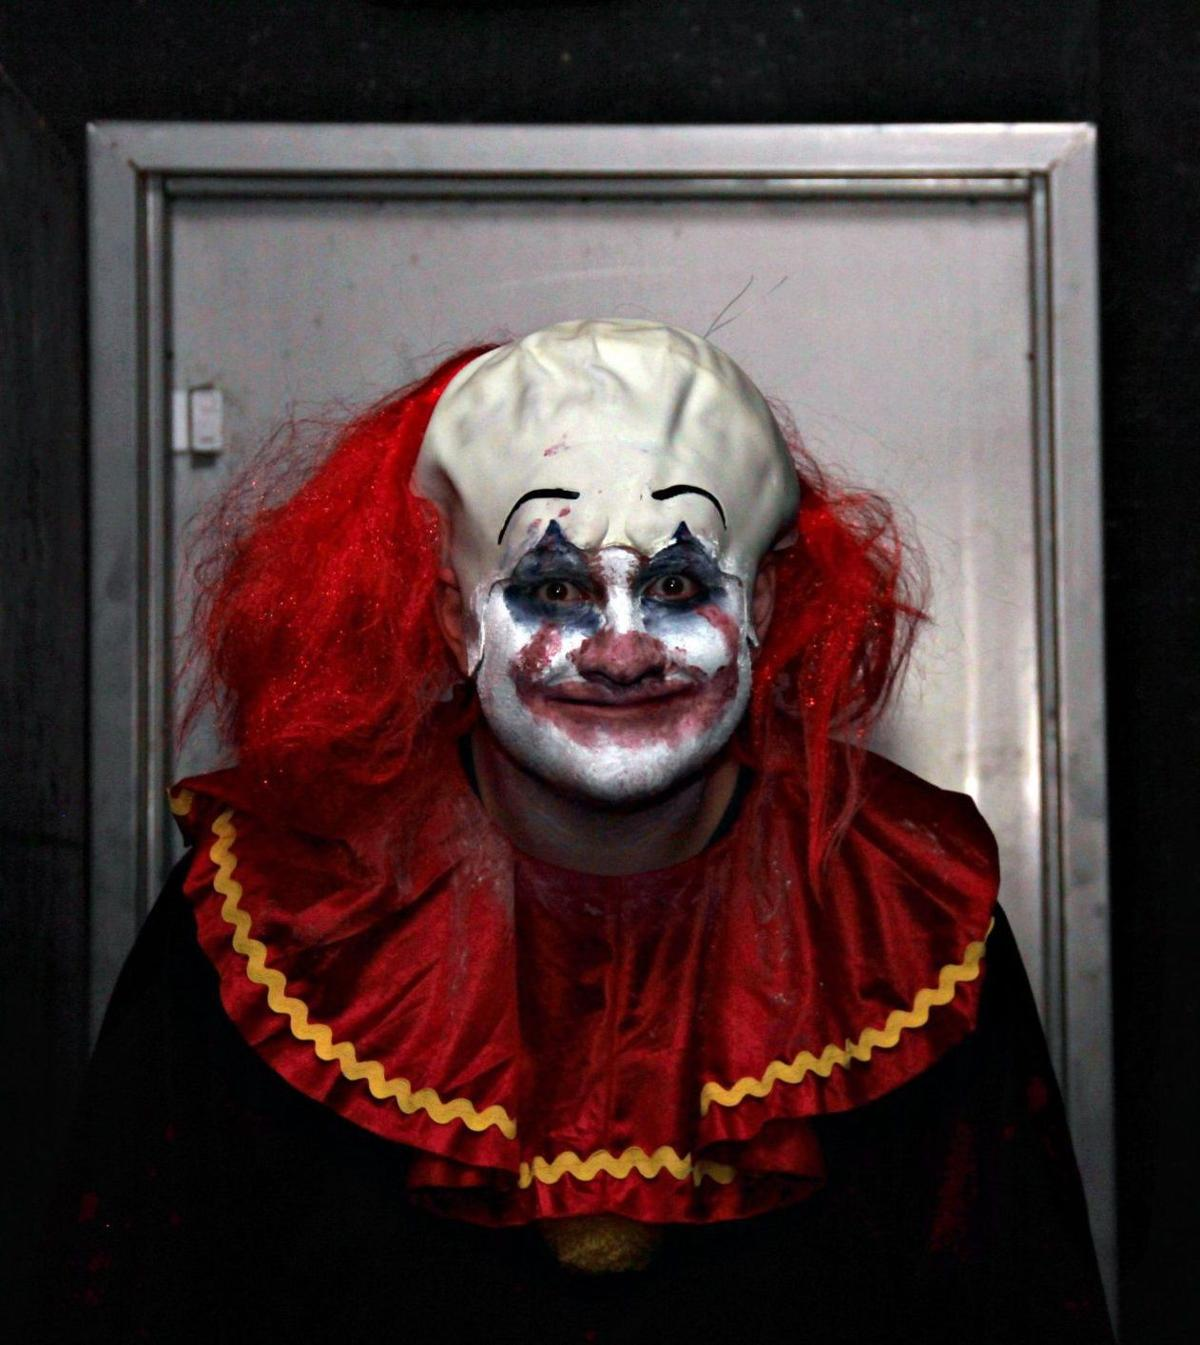 Haunted house delivers thrills, chills and clowns